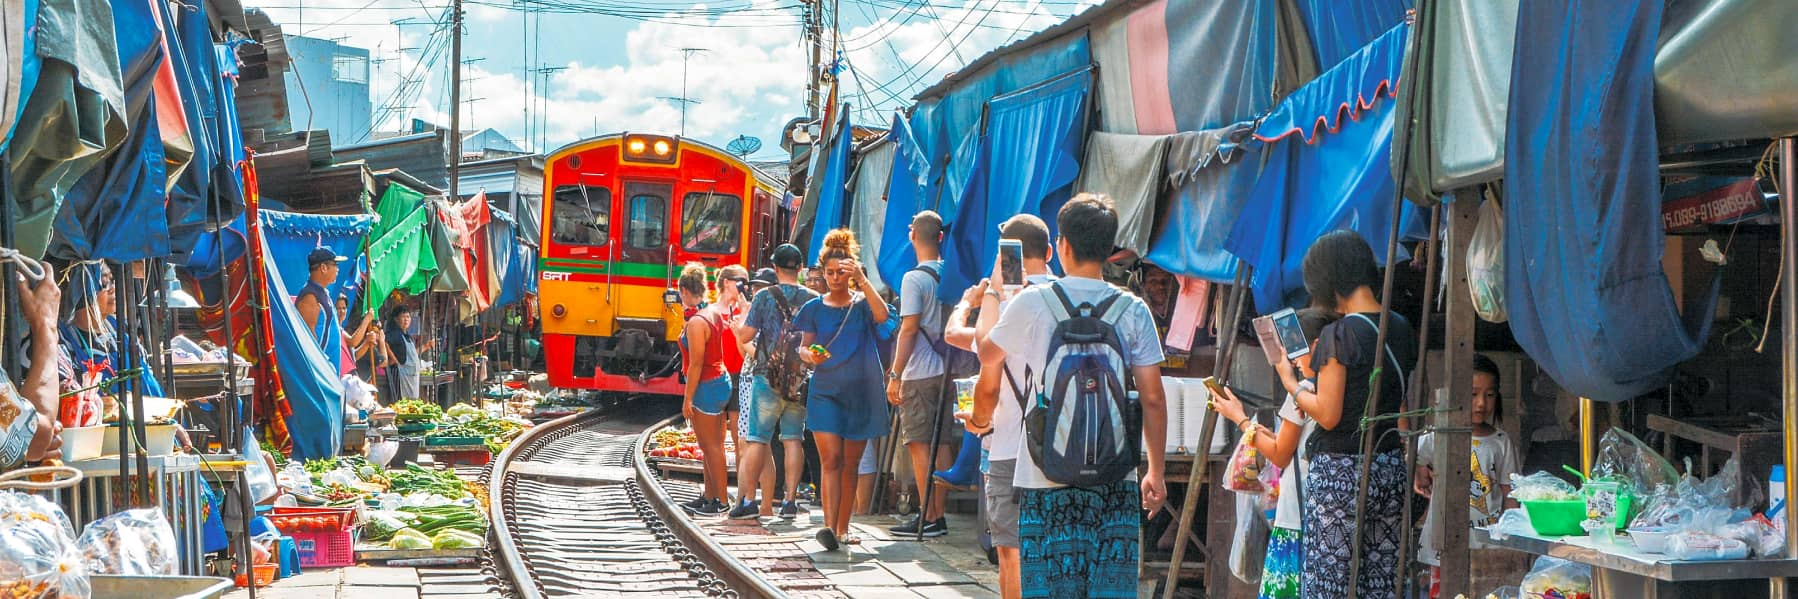 Amphawa Floating Market & Maeklong Railway Train Market Small Group Tour– Full Day gallery